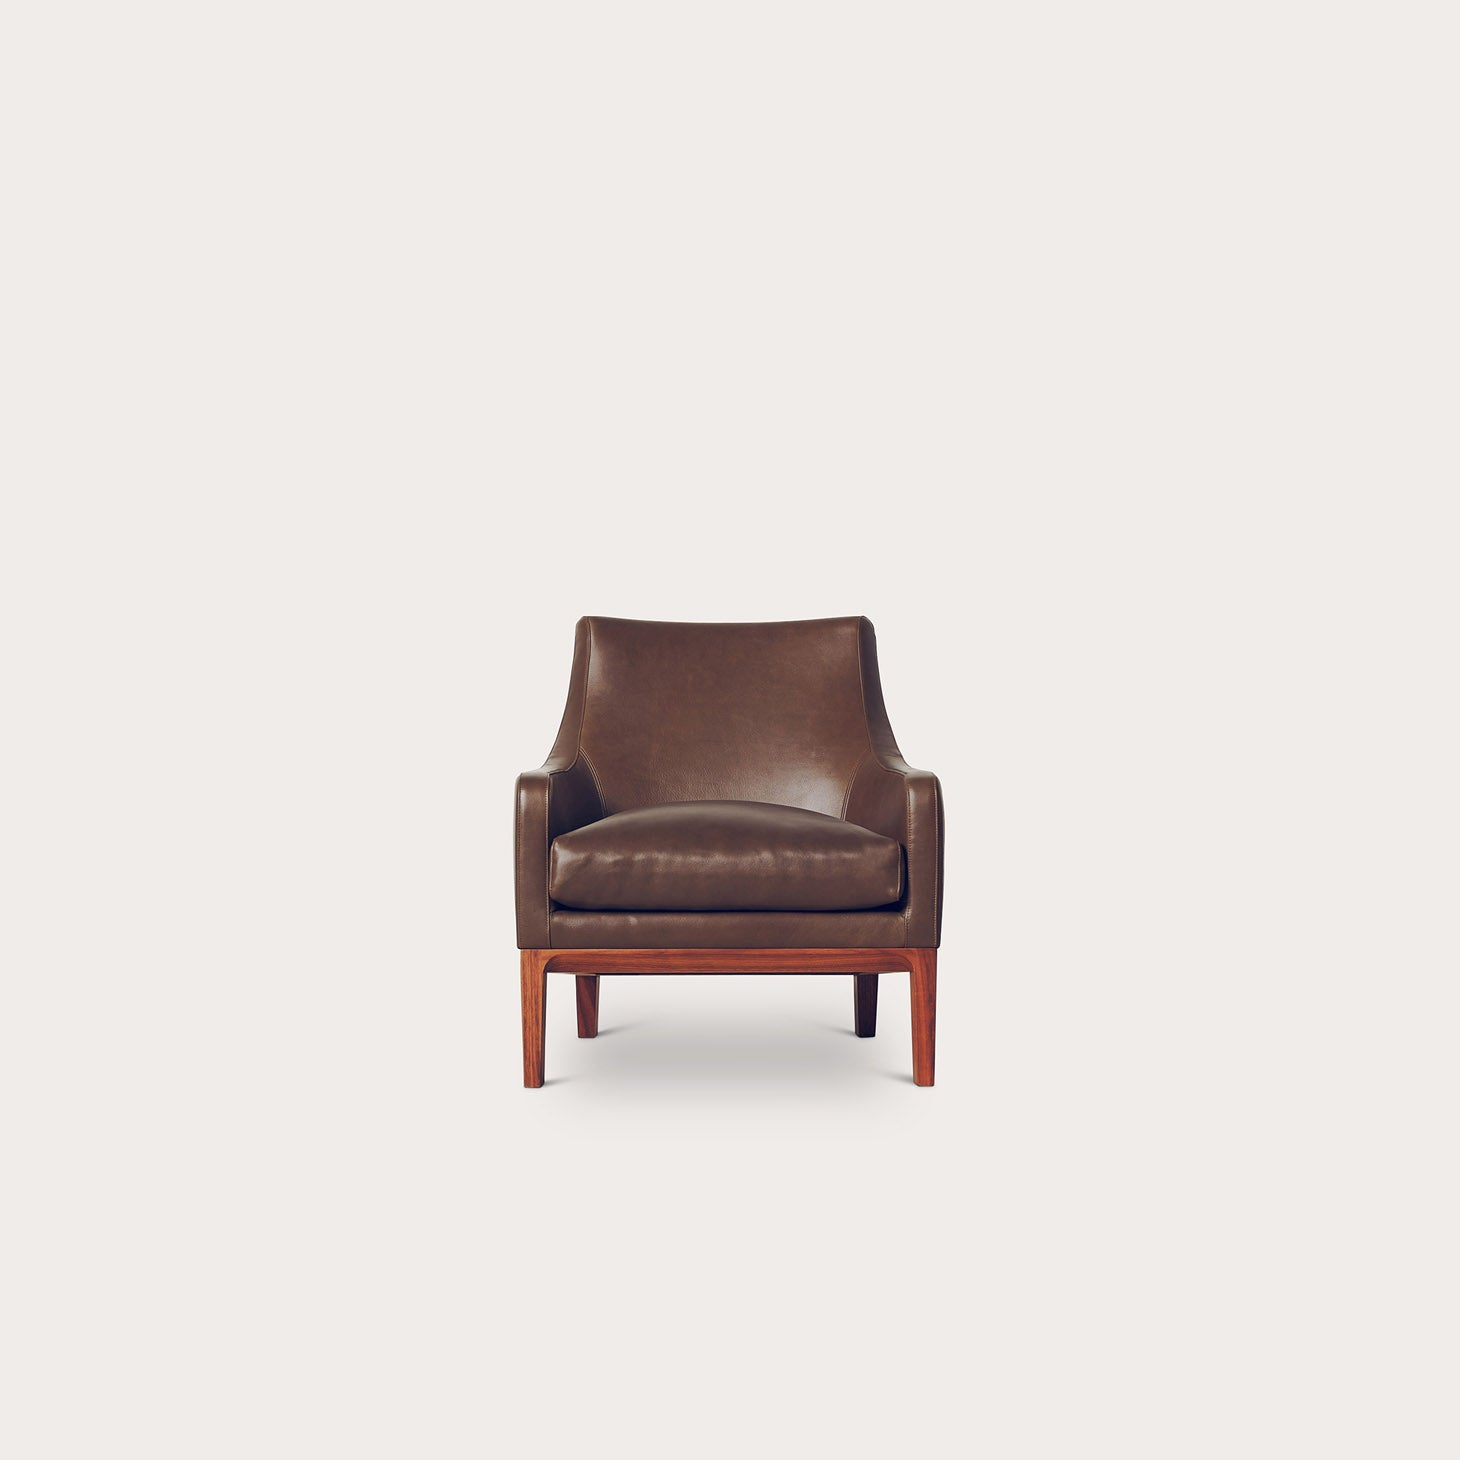 Miles Seating Niels Bendtsen Designer Furniture Sku: 247-240-10203